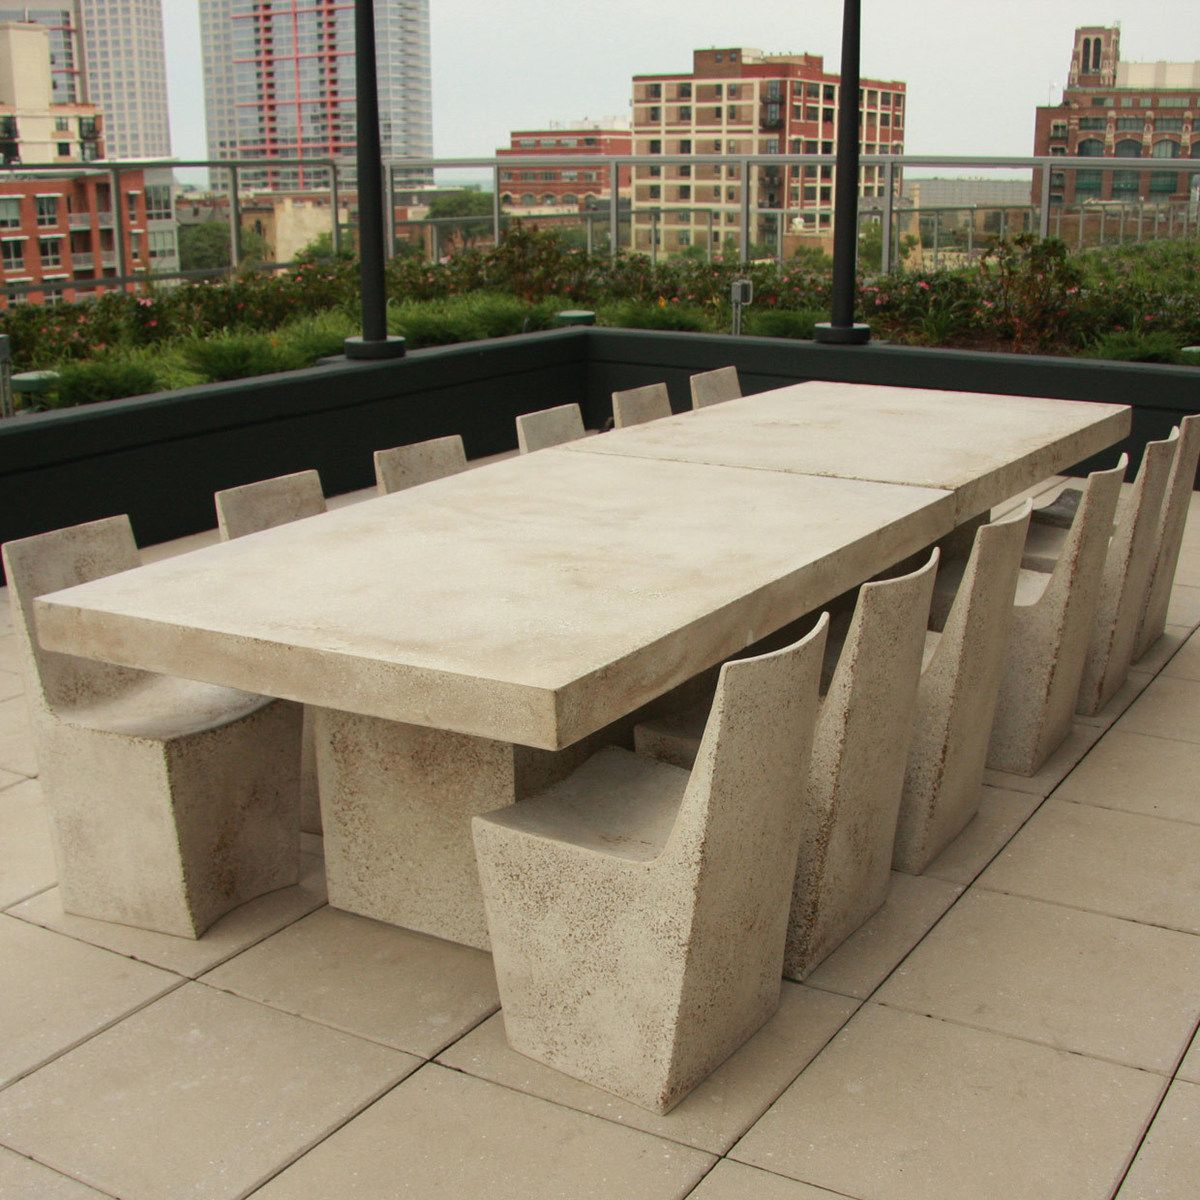 Stone Slab Table And Chairs. Heavy